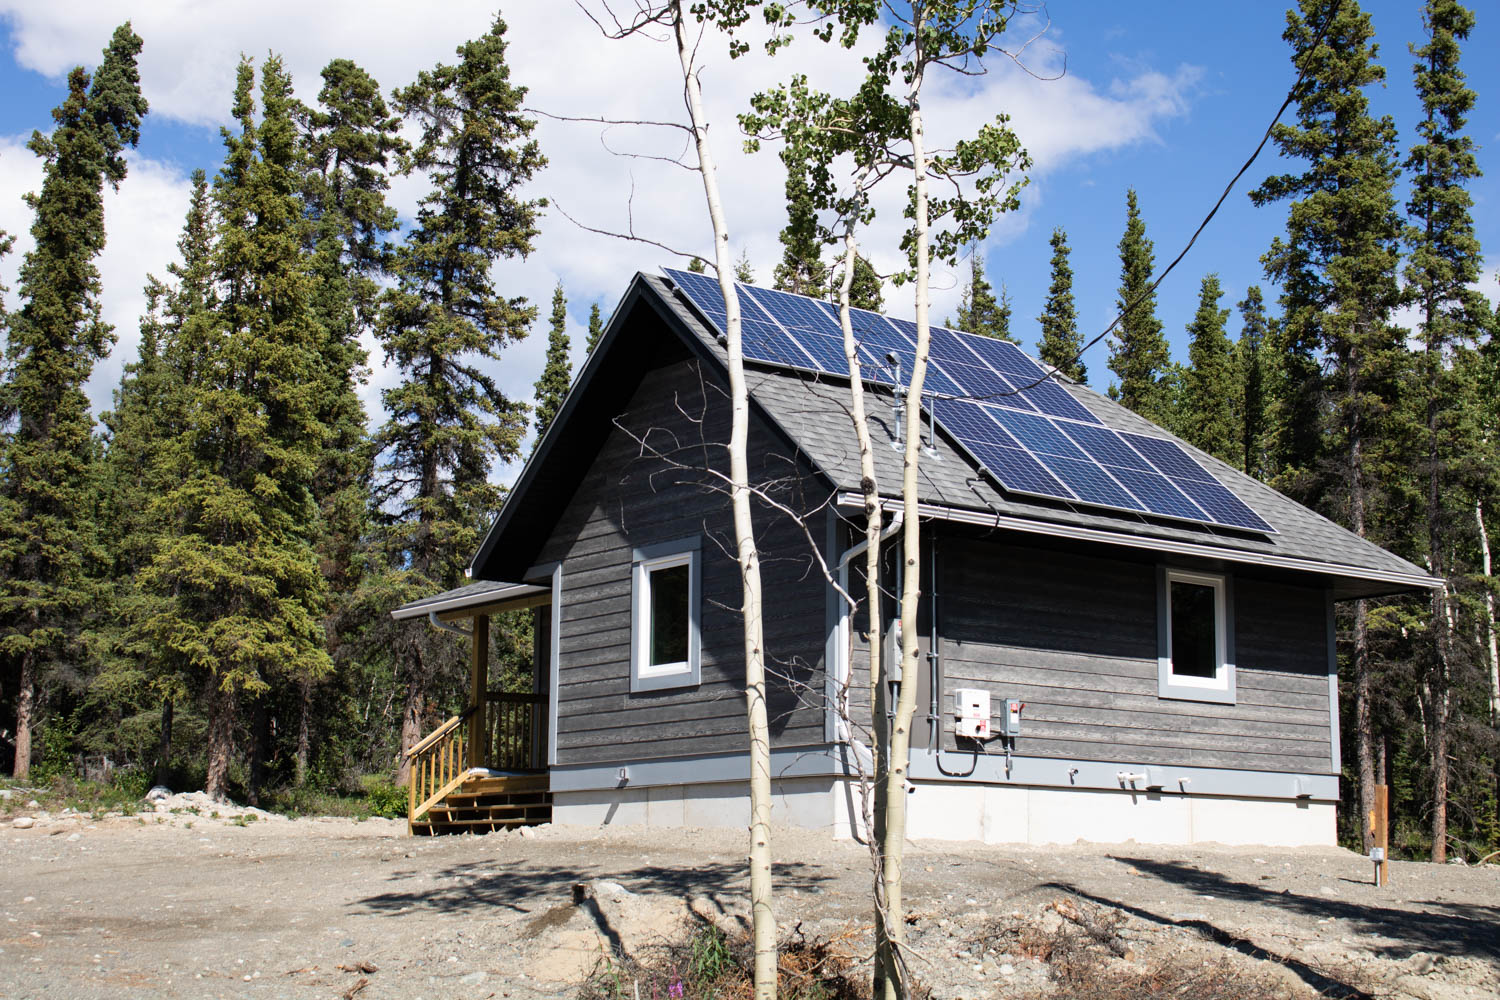 The newest phase of tiny homes in Carcross are slightly bigger than their predecessors, and are equipped with solar panels for better energy efficiency. The two-bedroom units are also outfitted with an optional wood-burning stove.""